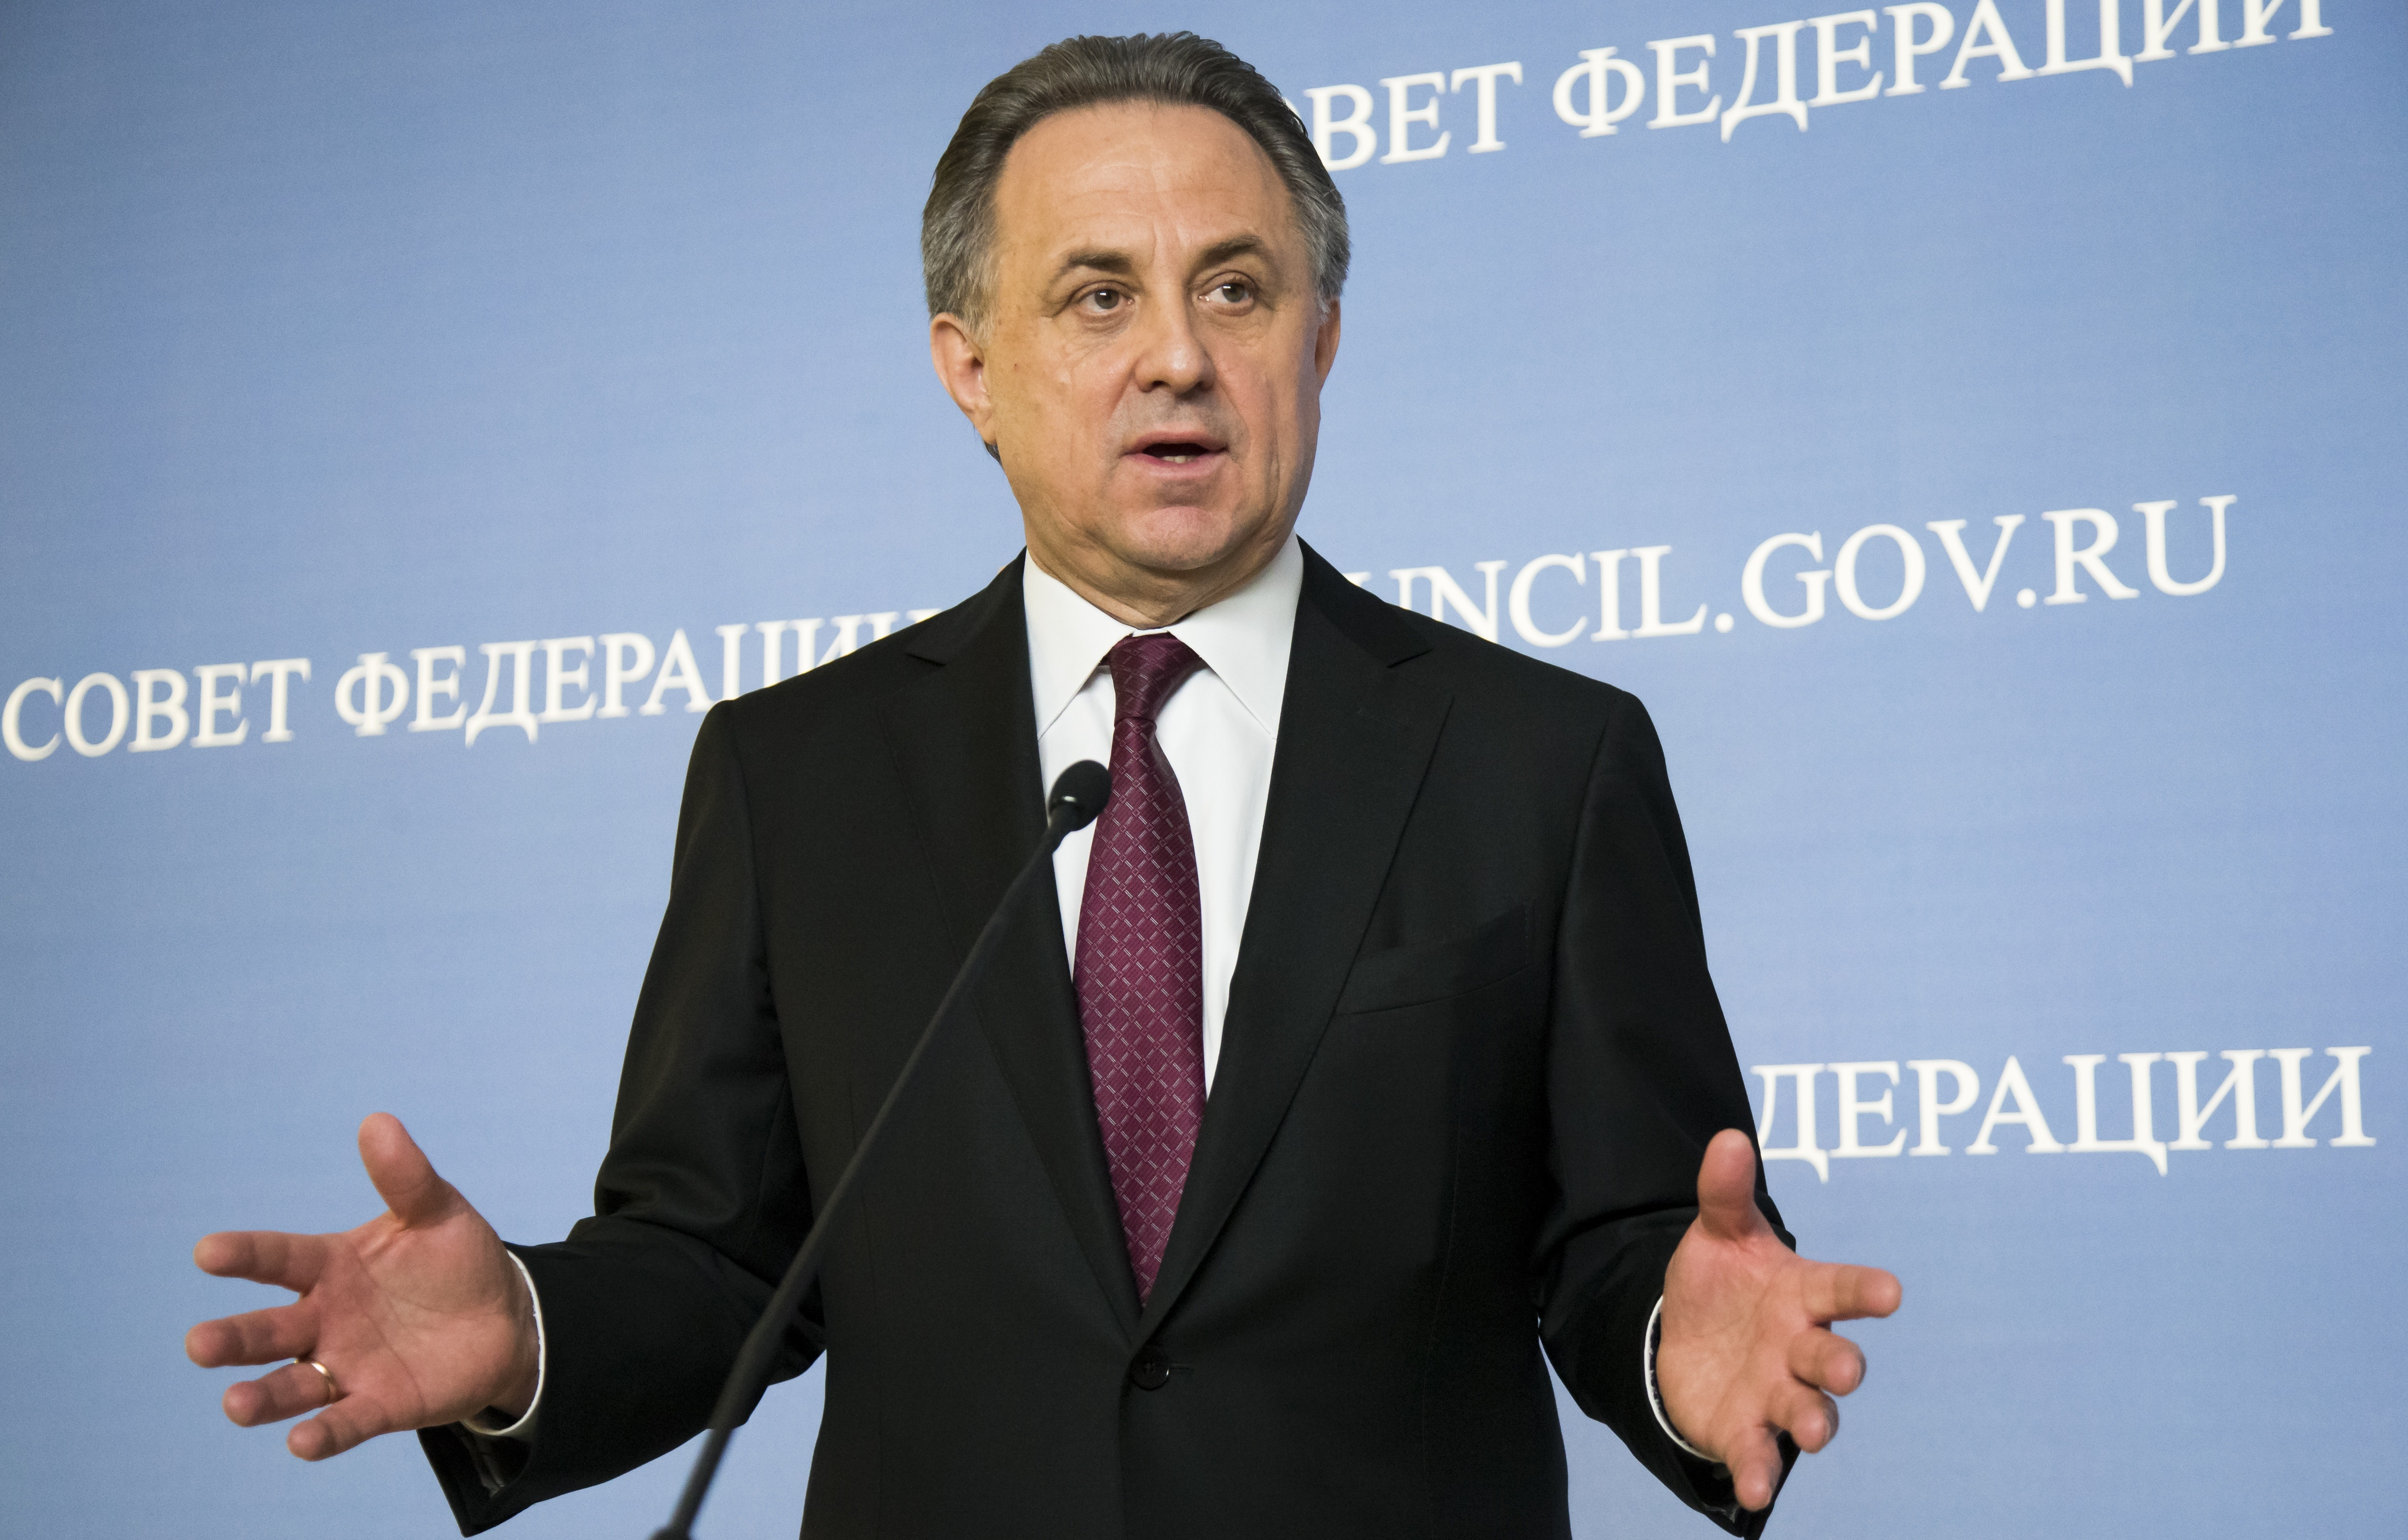 FILE - In this file photo taken on Wednesday, April  20, 2016, Russia's Sports Minister Vitaly Mutko gestures while speaking during his and FIFA President Gianni Infantino news conference after their addressed the upper chamber of the Russian parliament i